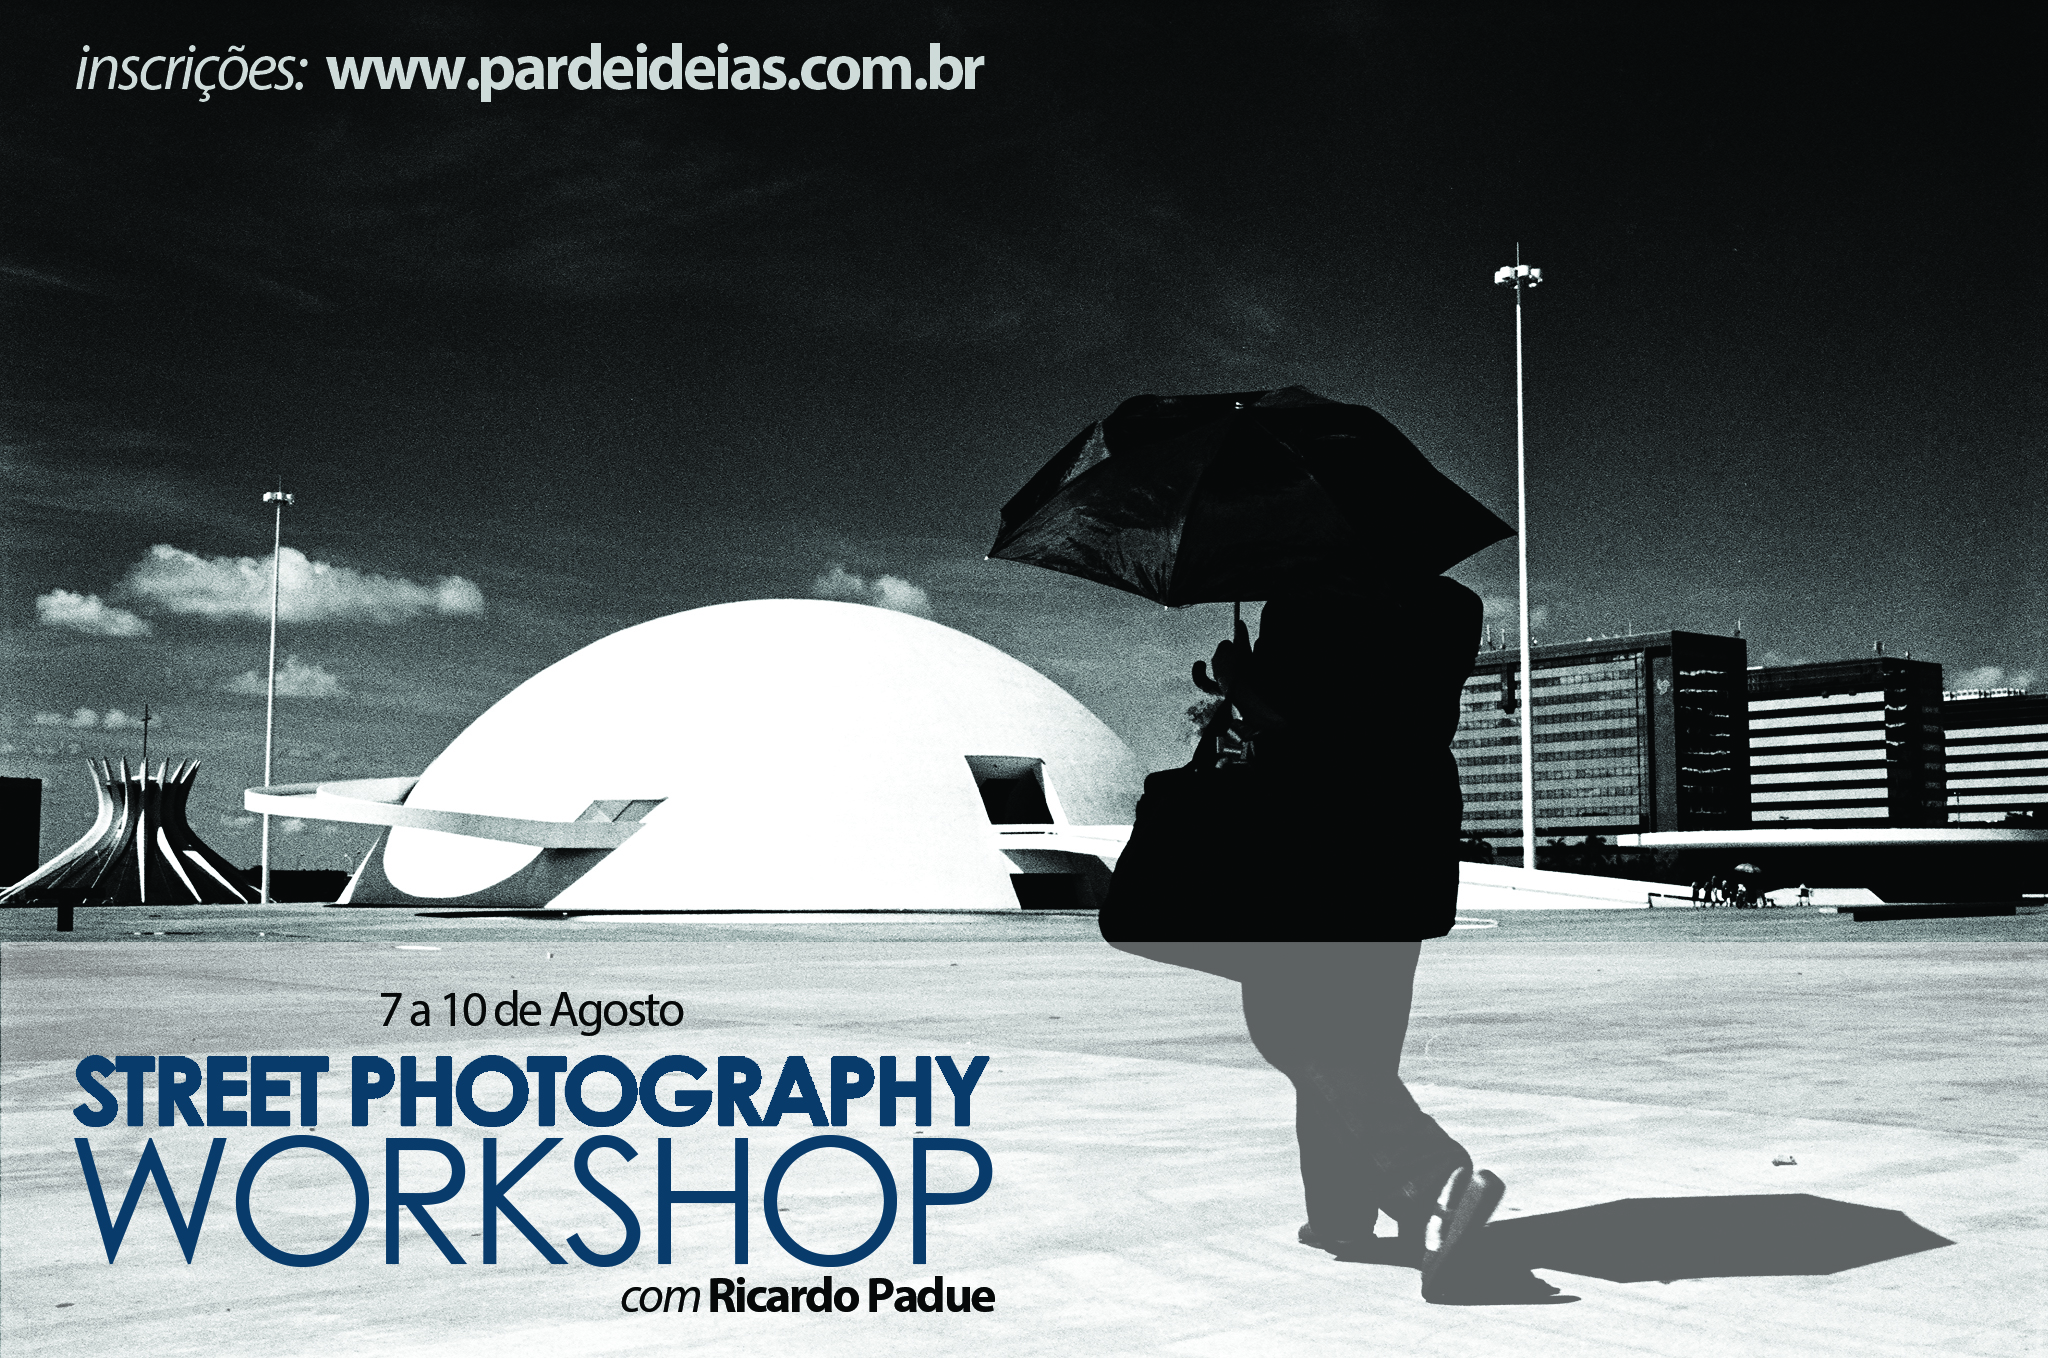 Street Phototography